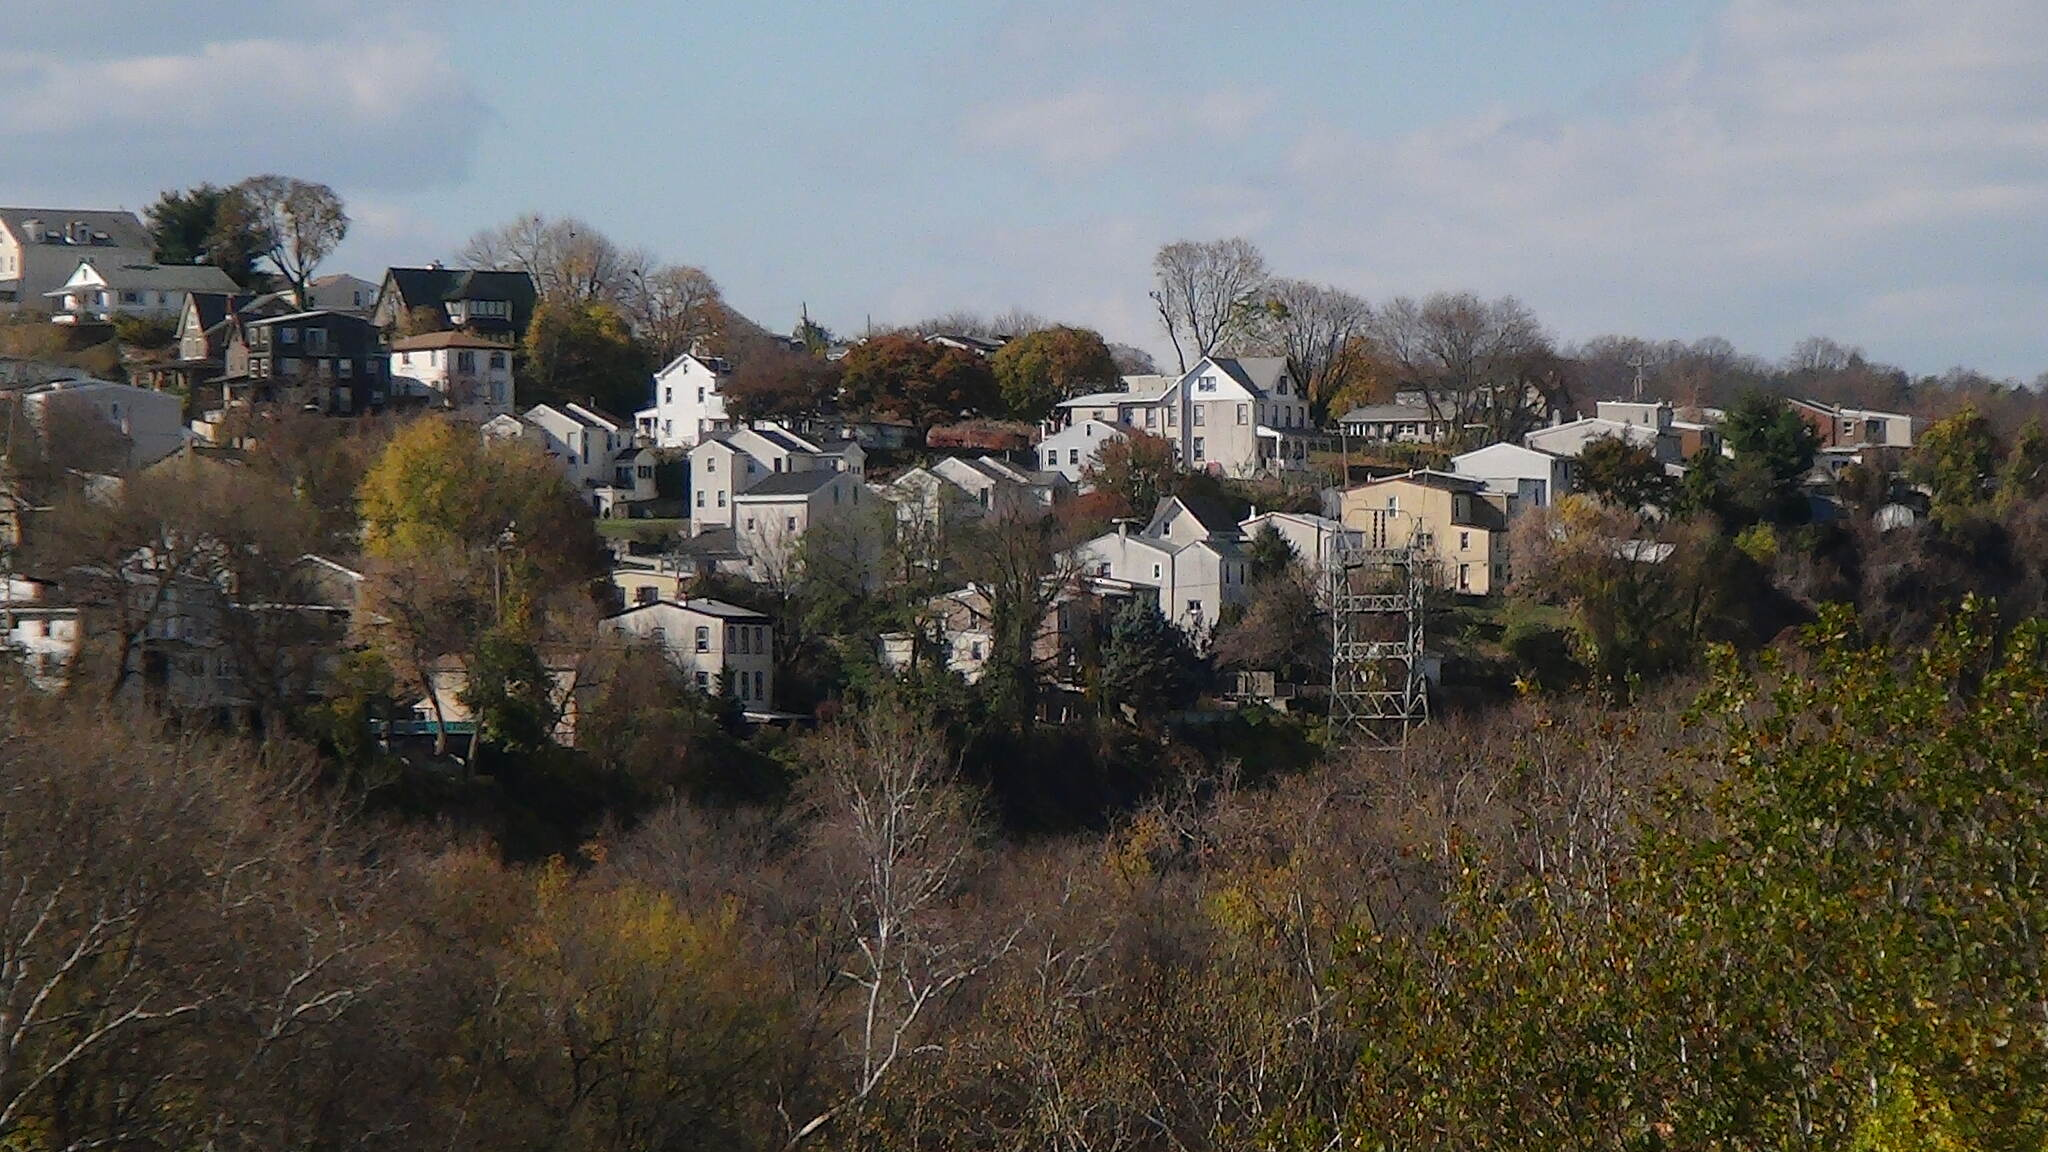 Cynwyd Heritage Trail West Manayunk This photo shows some of the homes on the hills. Some of the residents prefer Belmont Hills, though.